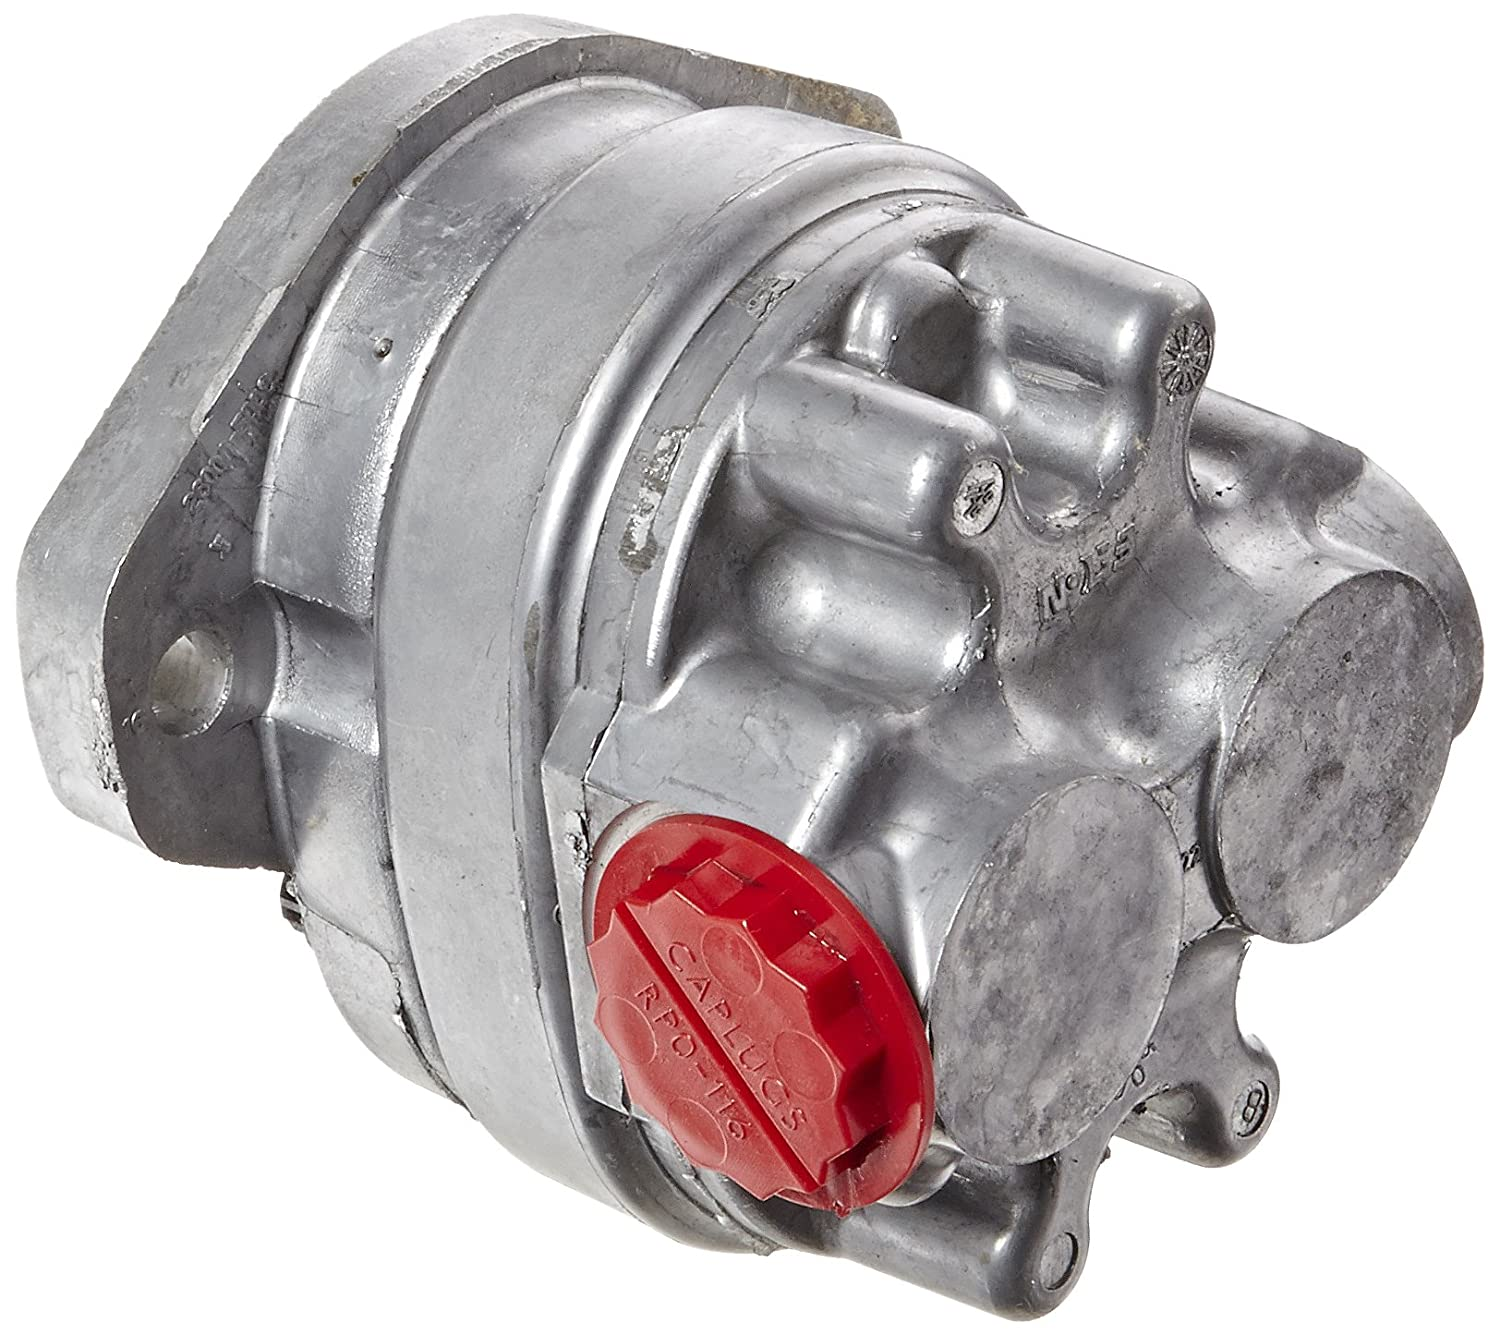 Vickers 26 Series Hydraulic Gear Pump, 3500 psi Maximum Pressure, 15.3 gpm Flow Rate, 1.2 Cubic-inch/rev Displacement, Left Hand Shaft Rotation, 5/8